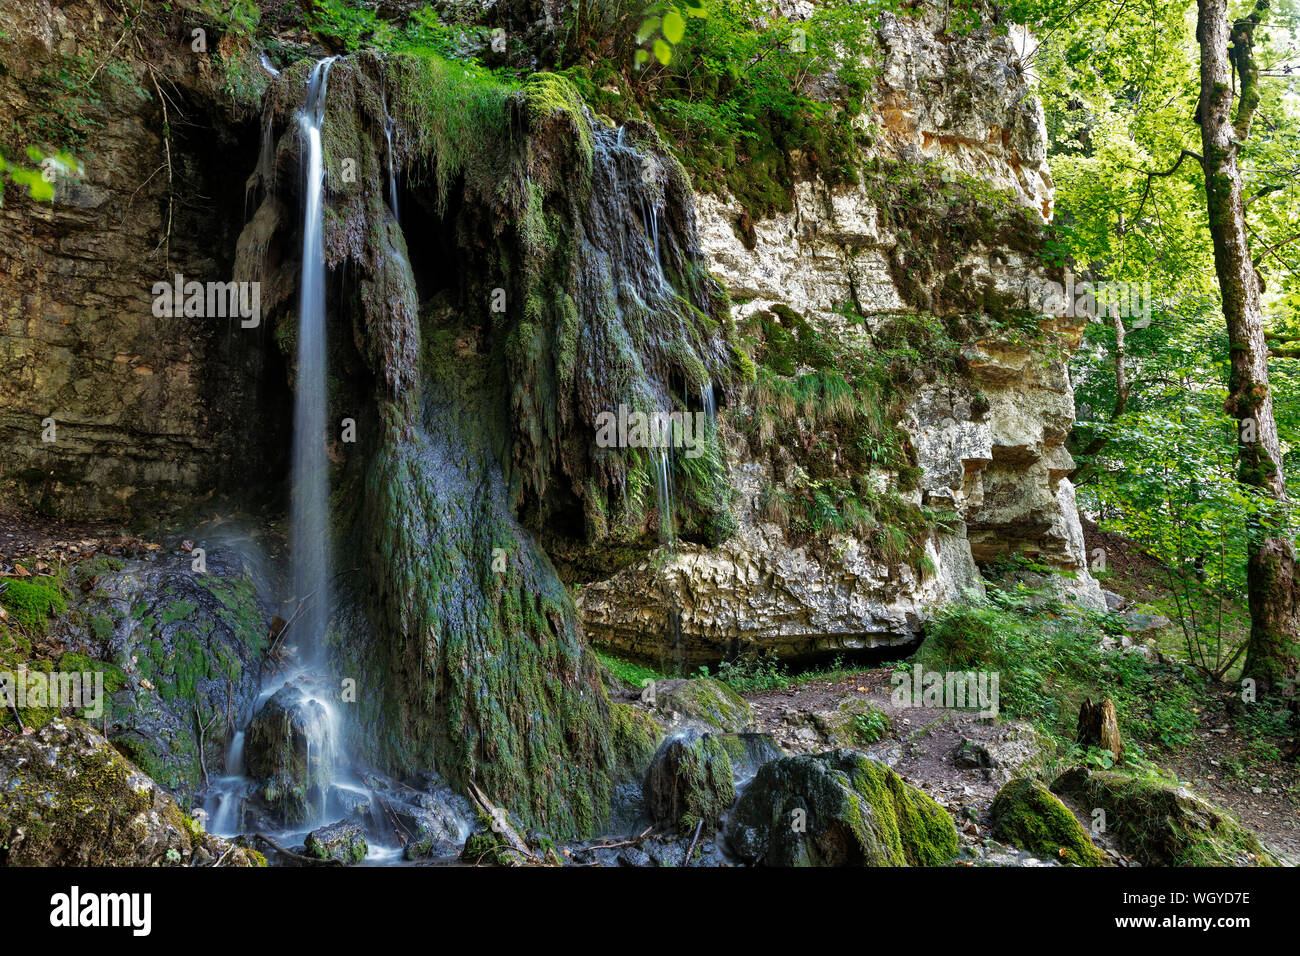 Tannegger Waterfall with its bizarre tufa formation in the Wutach Gorge Nature Reserve, Black Forest, Baden-Württemberg, Germany Stock Photo